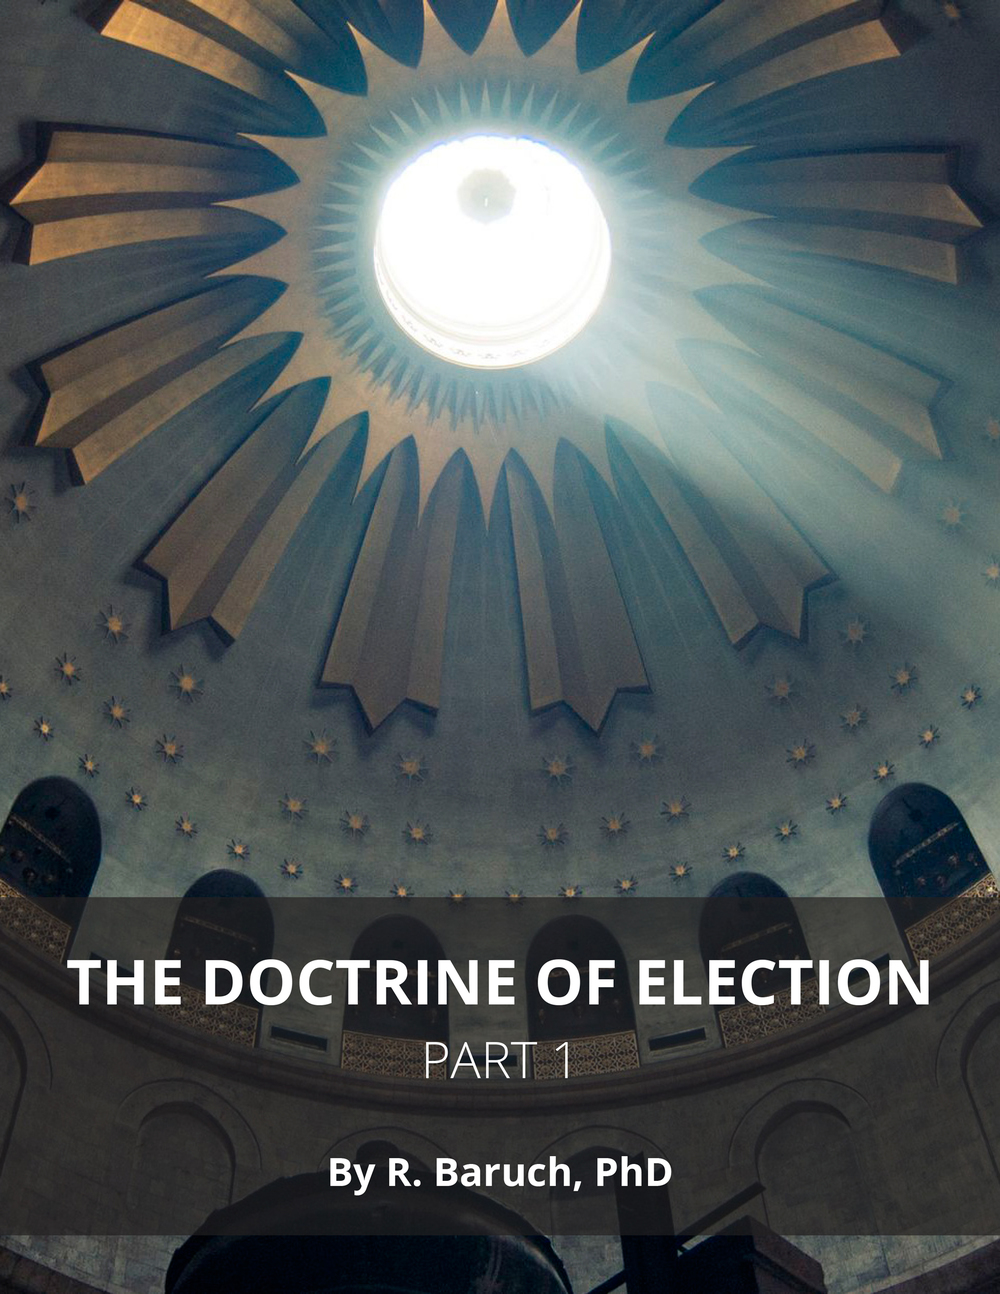 Doctrine of Election Part 1